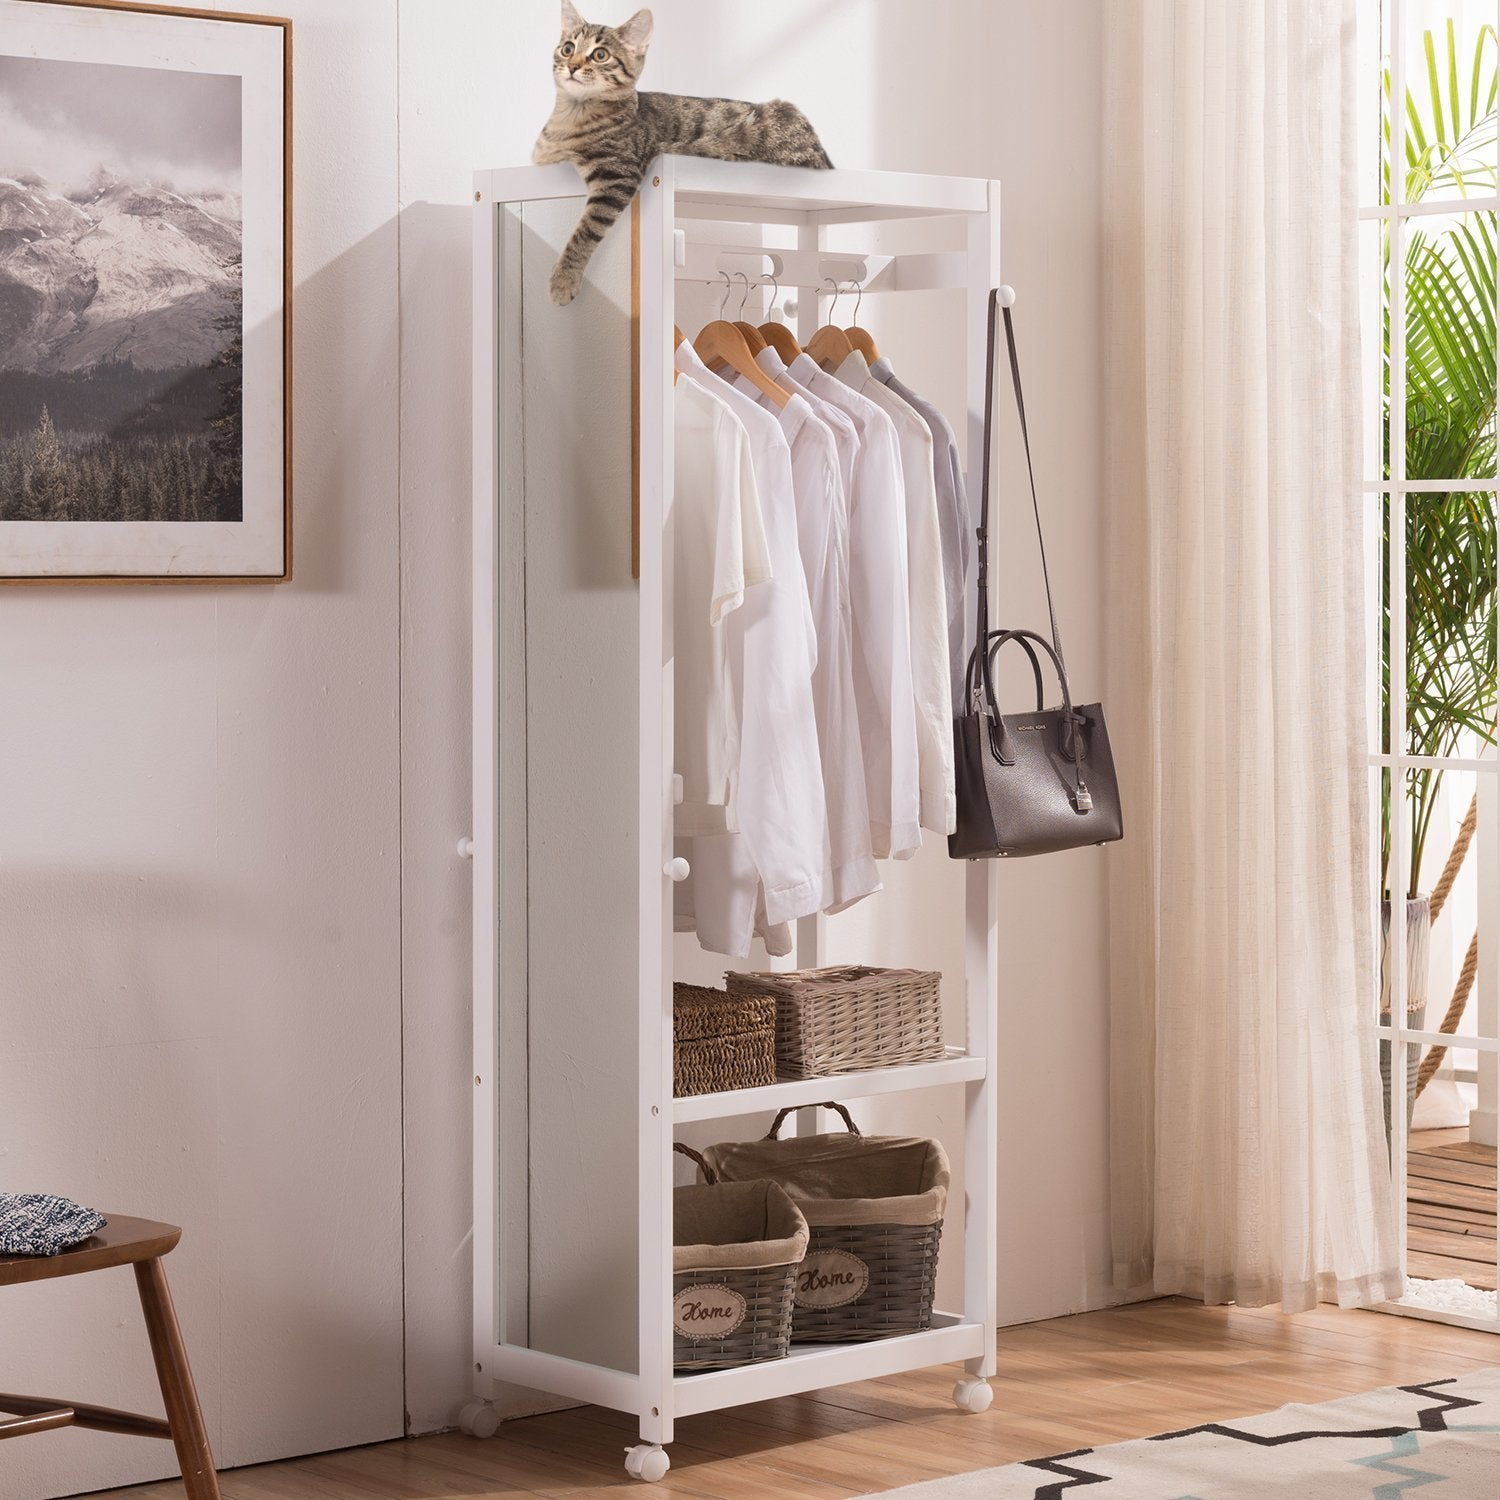 Latest free standing armoire wardrobe closet with full length mirror 67 tall wooden closet storage wardrobe with brake wheels hanger rod coat hooks entryway storage shelves organizer ivory white